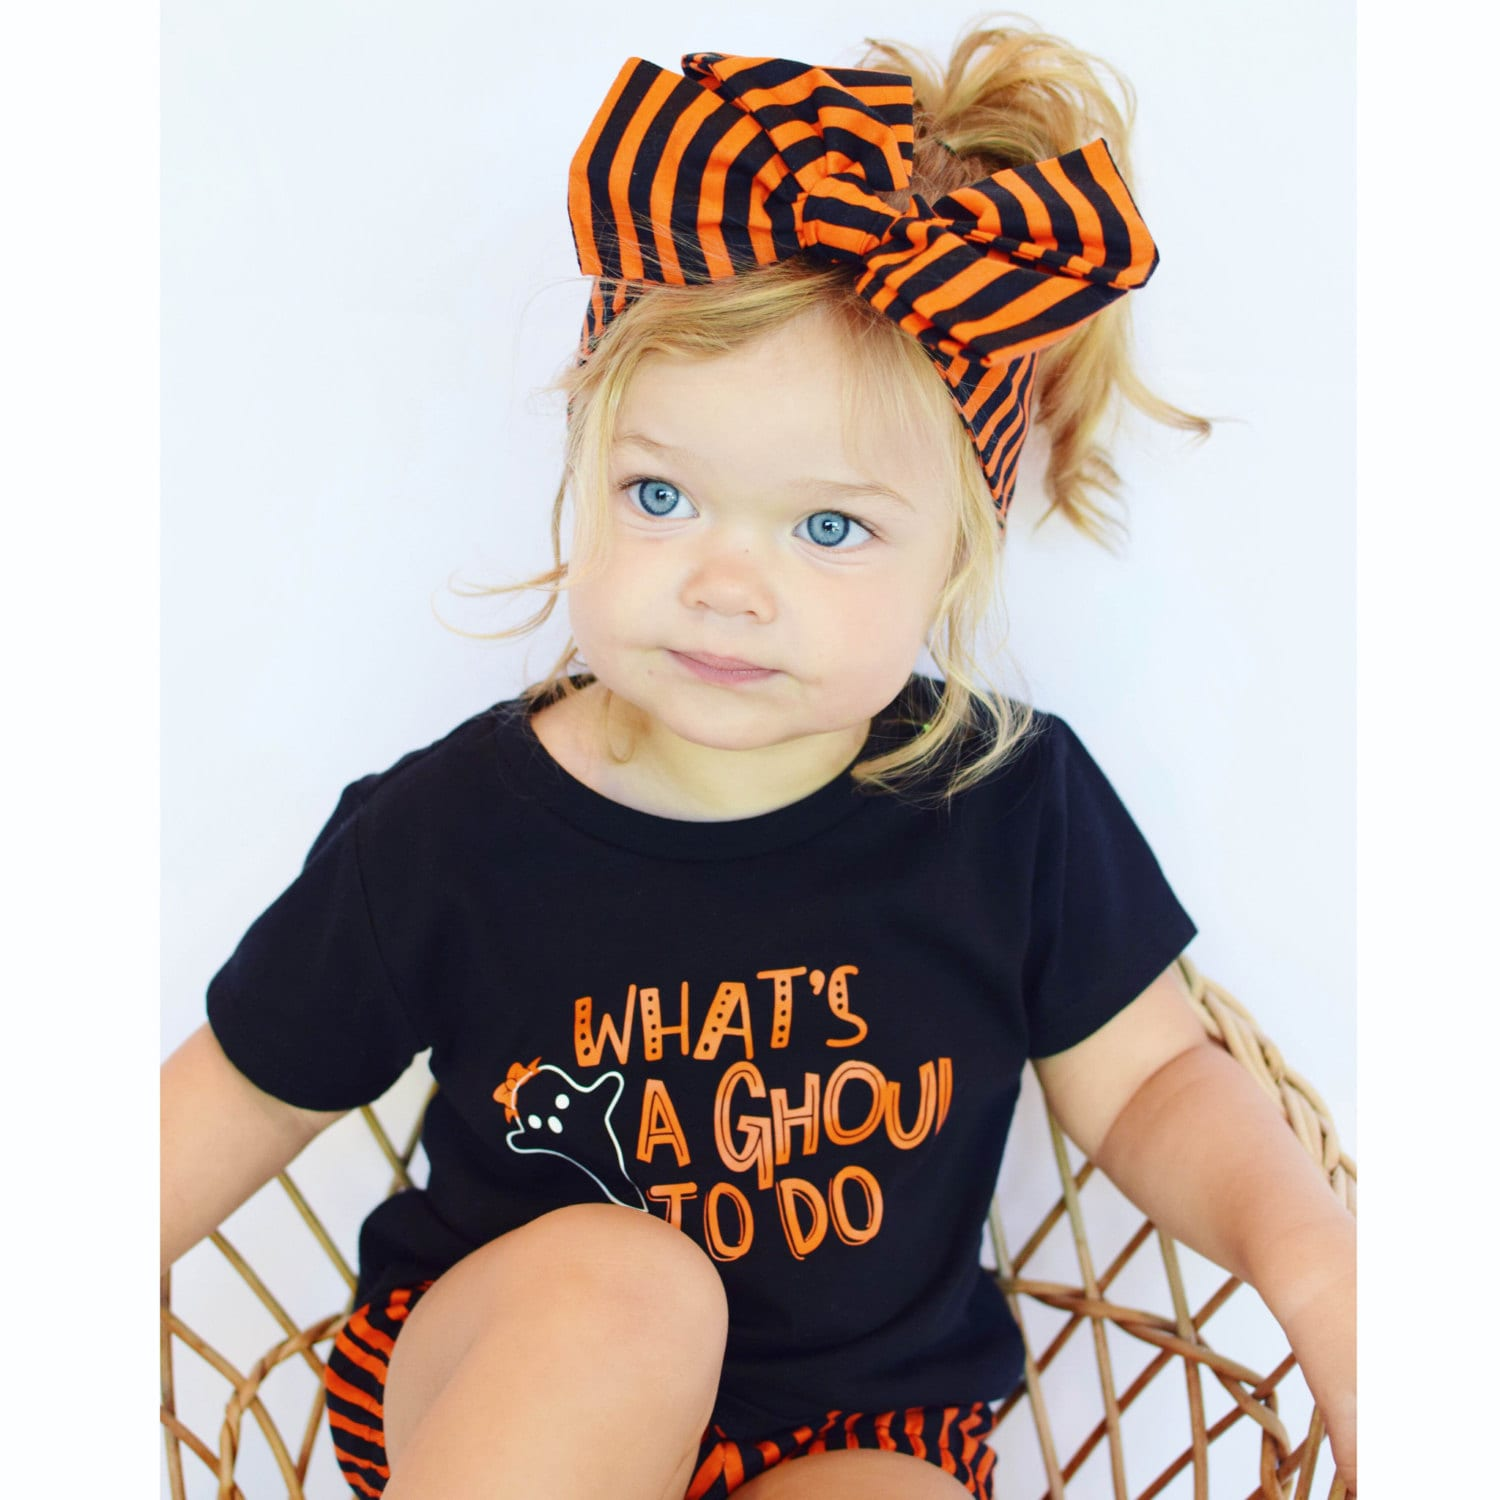 Whats a ghoul to do girl Halloween shirt toddler girl